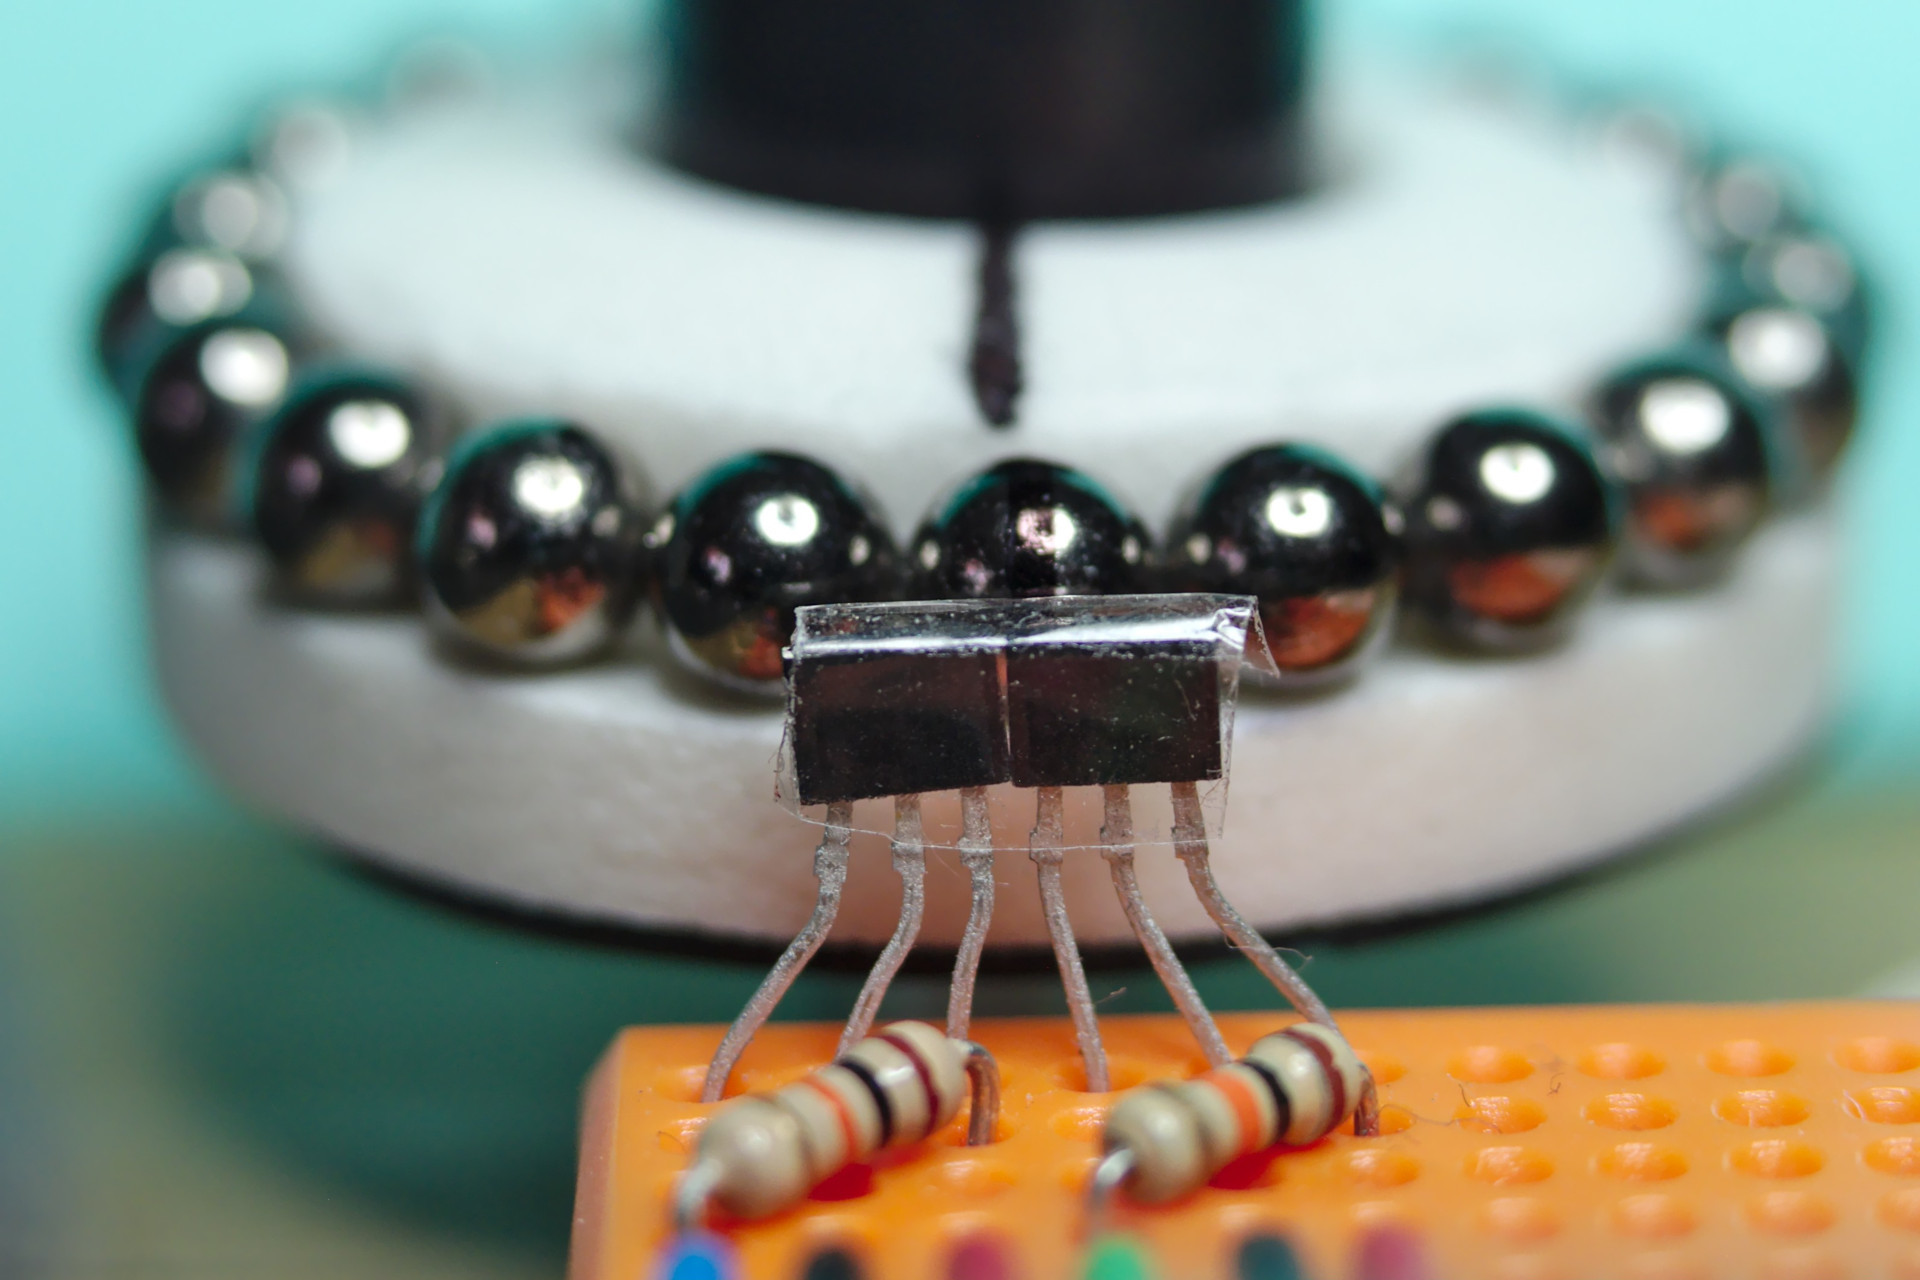 Low-cost and precise rotary encoder with magnetic spheres | en